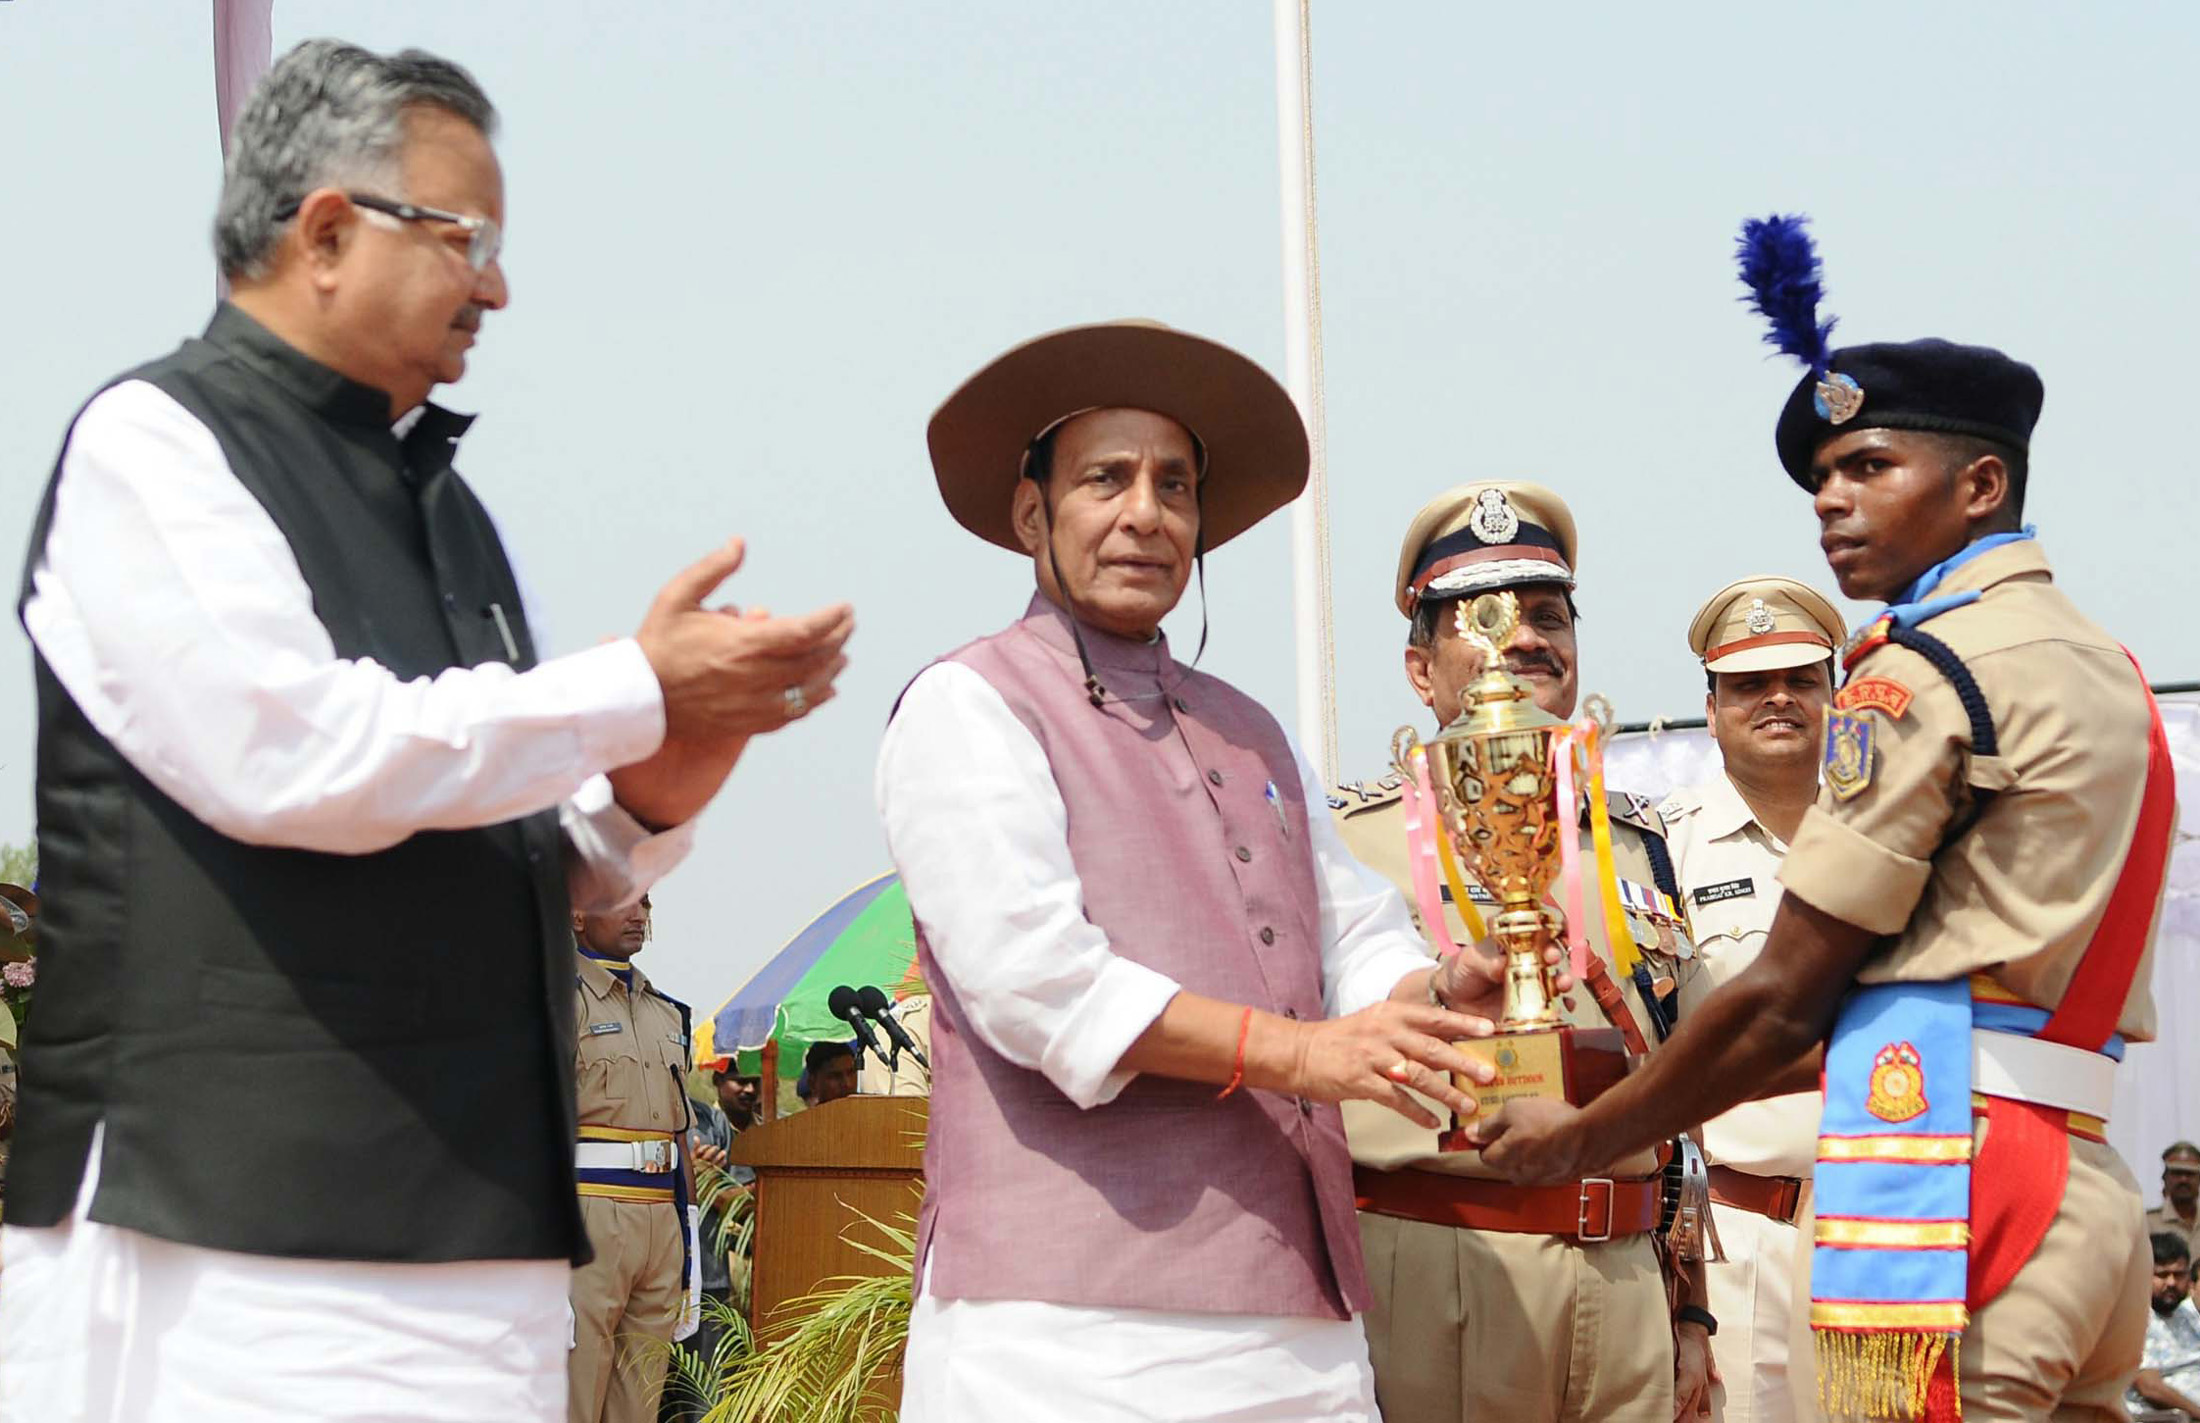 The Union Home Minister, Shri Rajnath Singh presenting the trophies, on the occasion of the Passing Out Parade of the 'Bastariya Battalion' of CRPF, at Ambikapur, in Chhattisgarh on May 21, 2018.  	The Chief Minister of Chhattisgarh, Dr. Raman Singh is also seen.